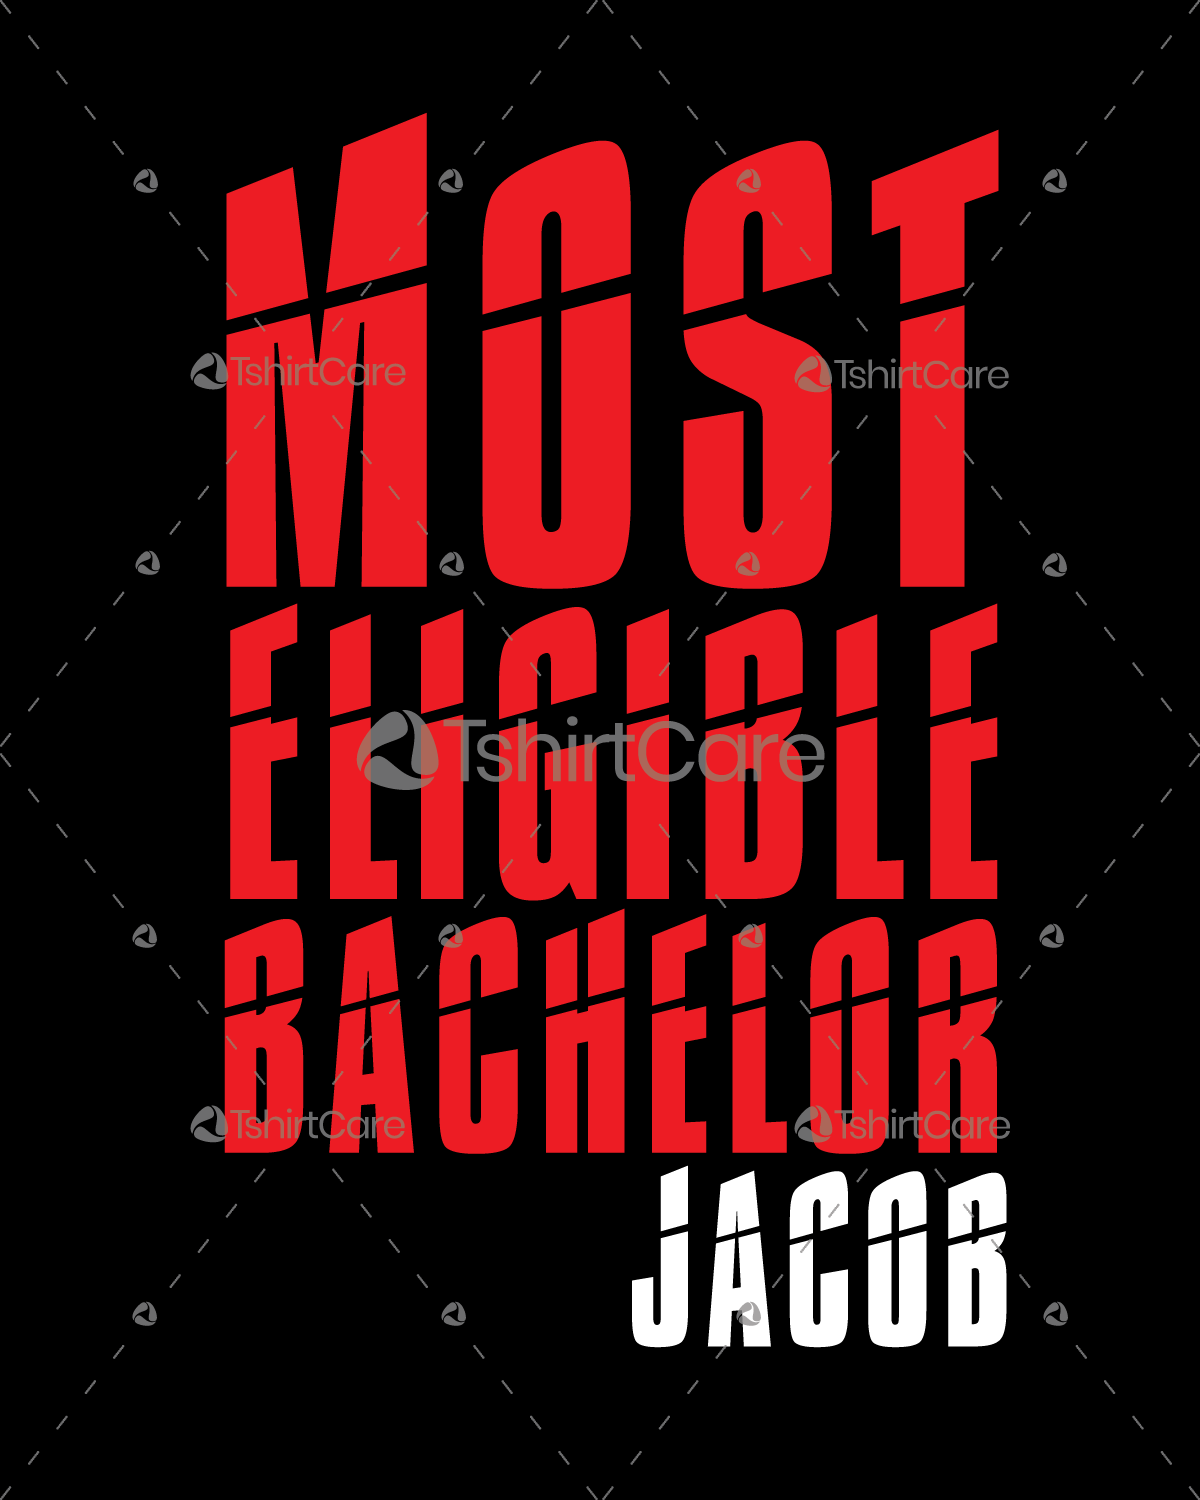 Most Eligible Bachelor Jacob T shirt Design for Gift